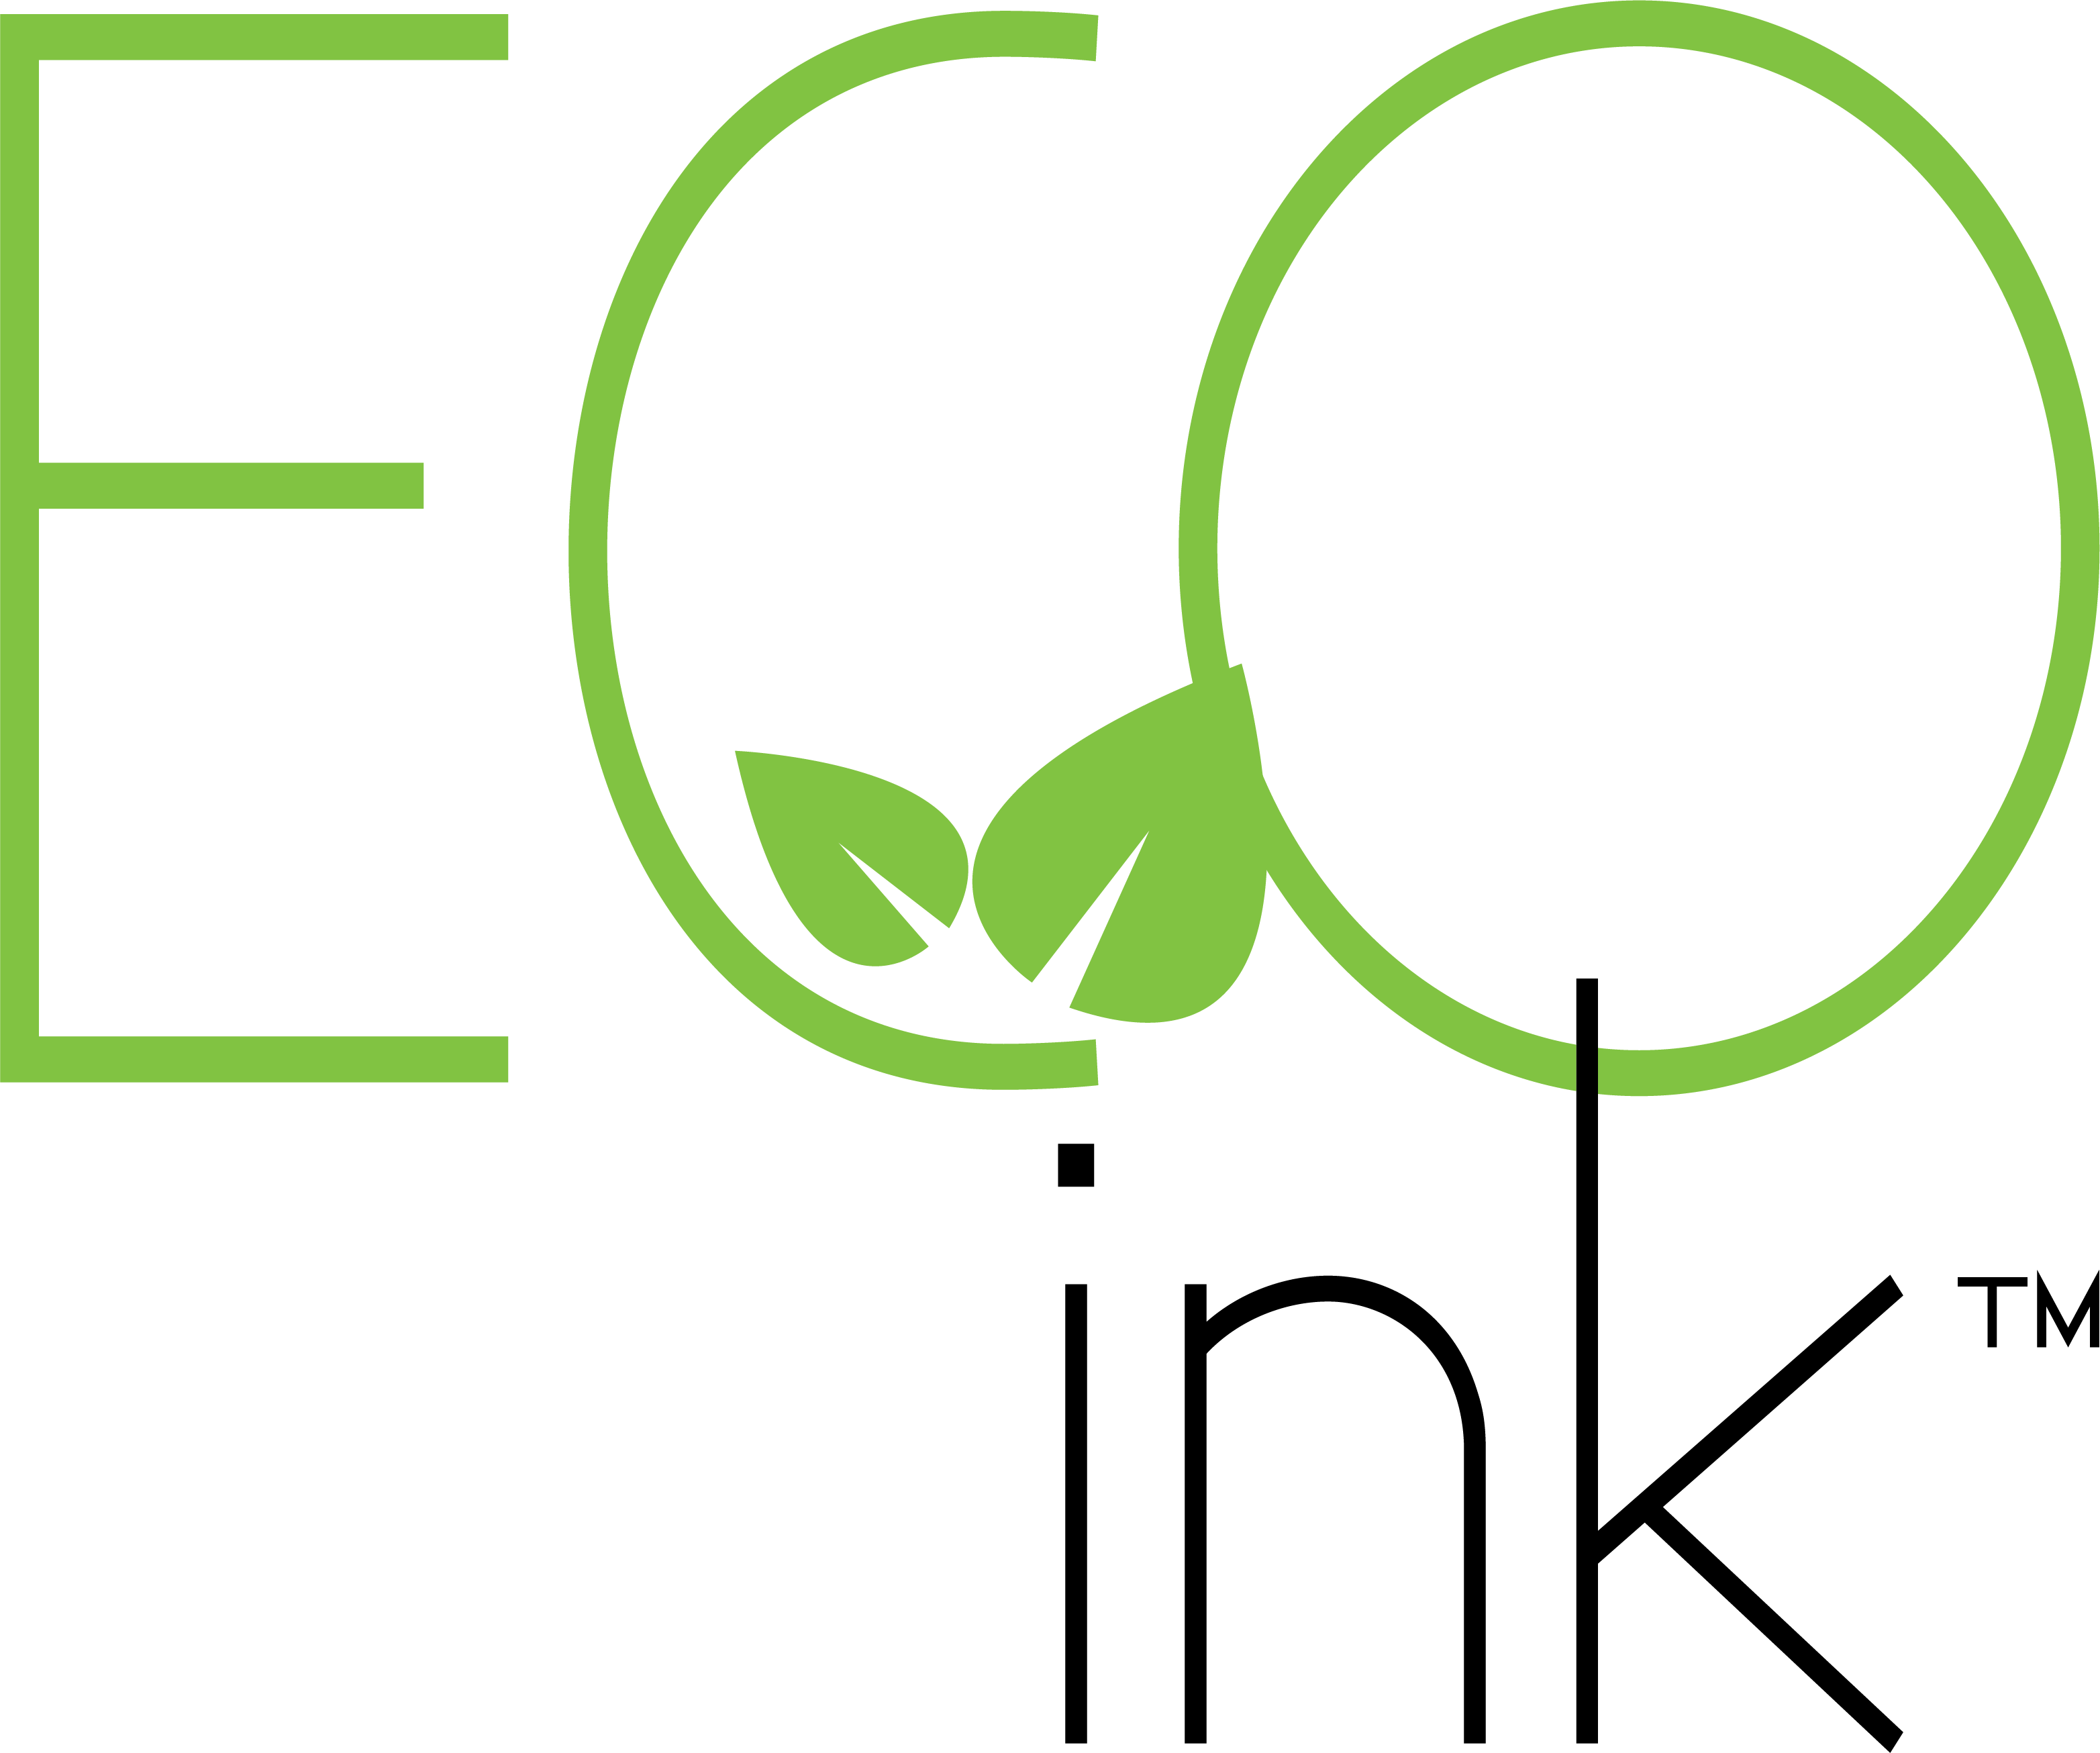 logo_Eco_Ink_27112014